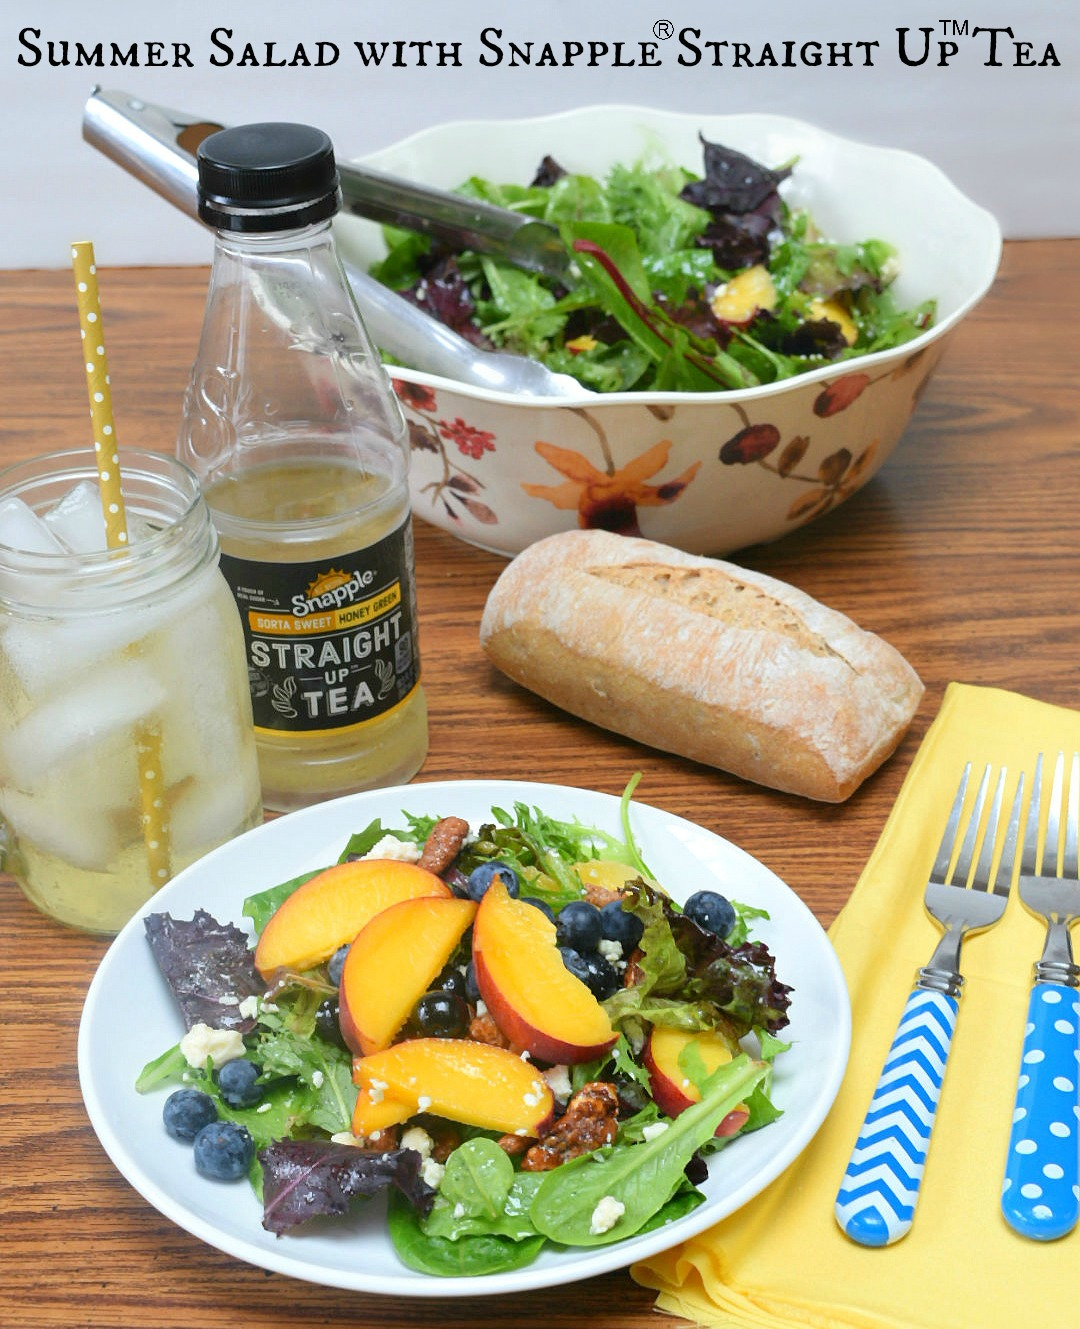 Summer Salad with Straight Up Tea